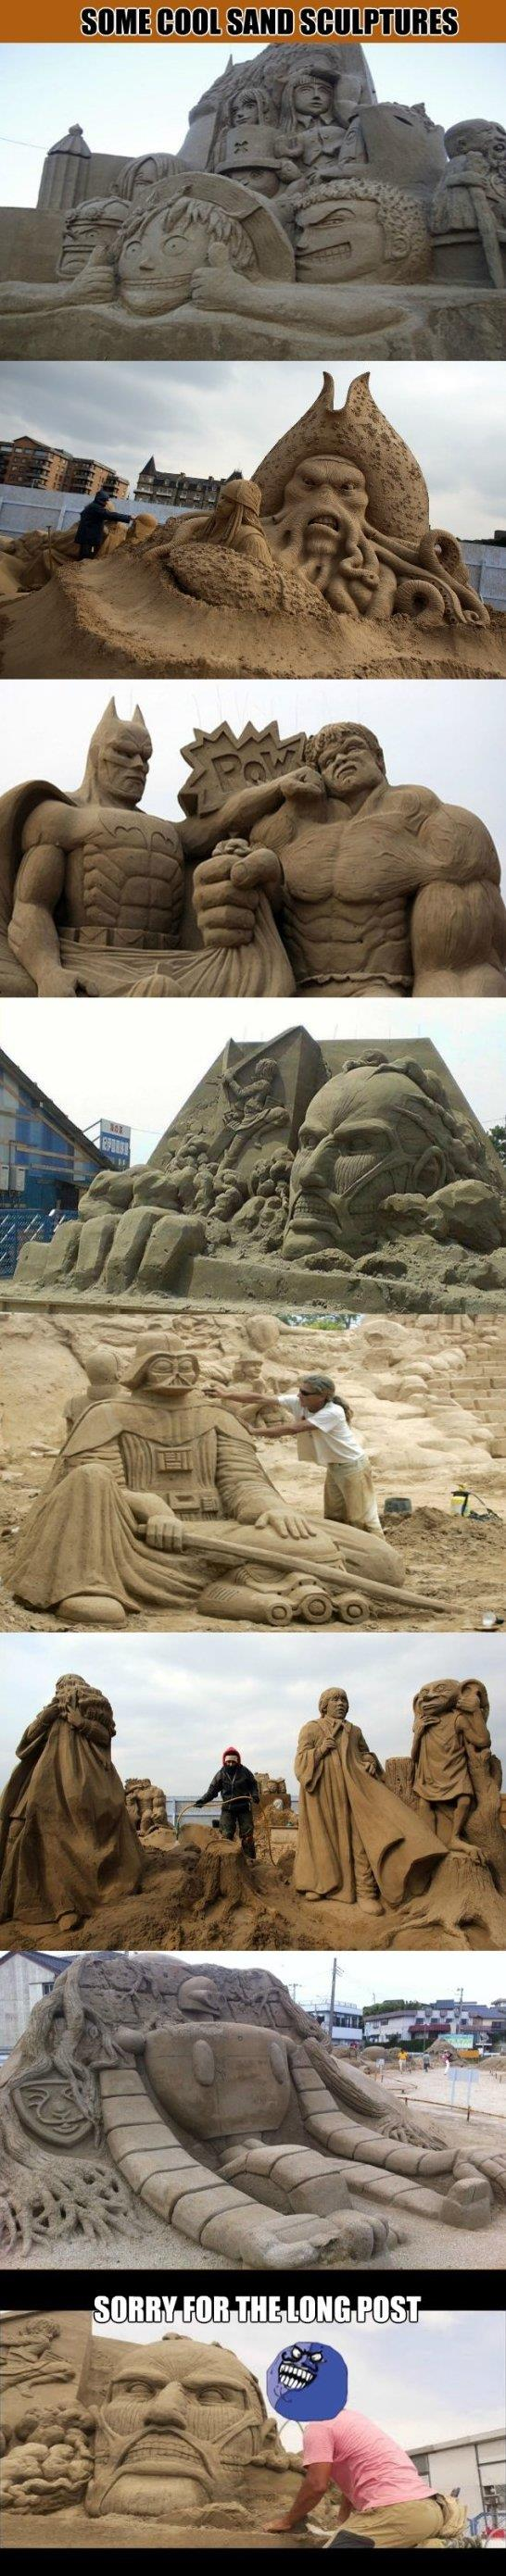 Cool Sand Sculptures